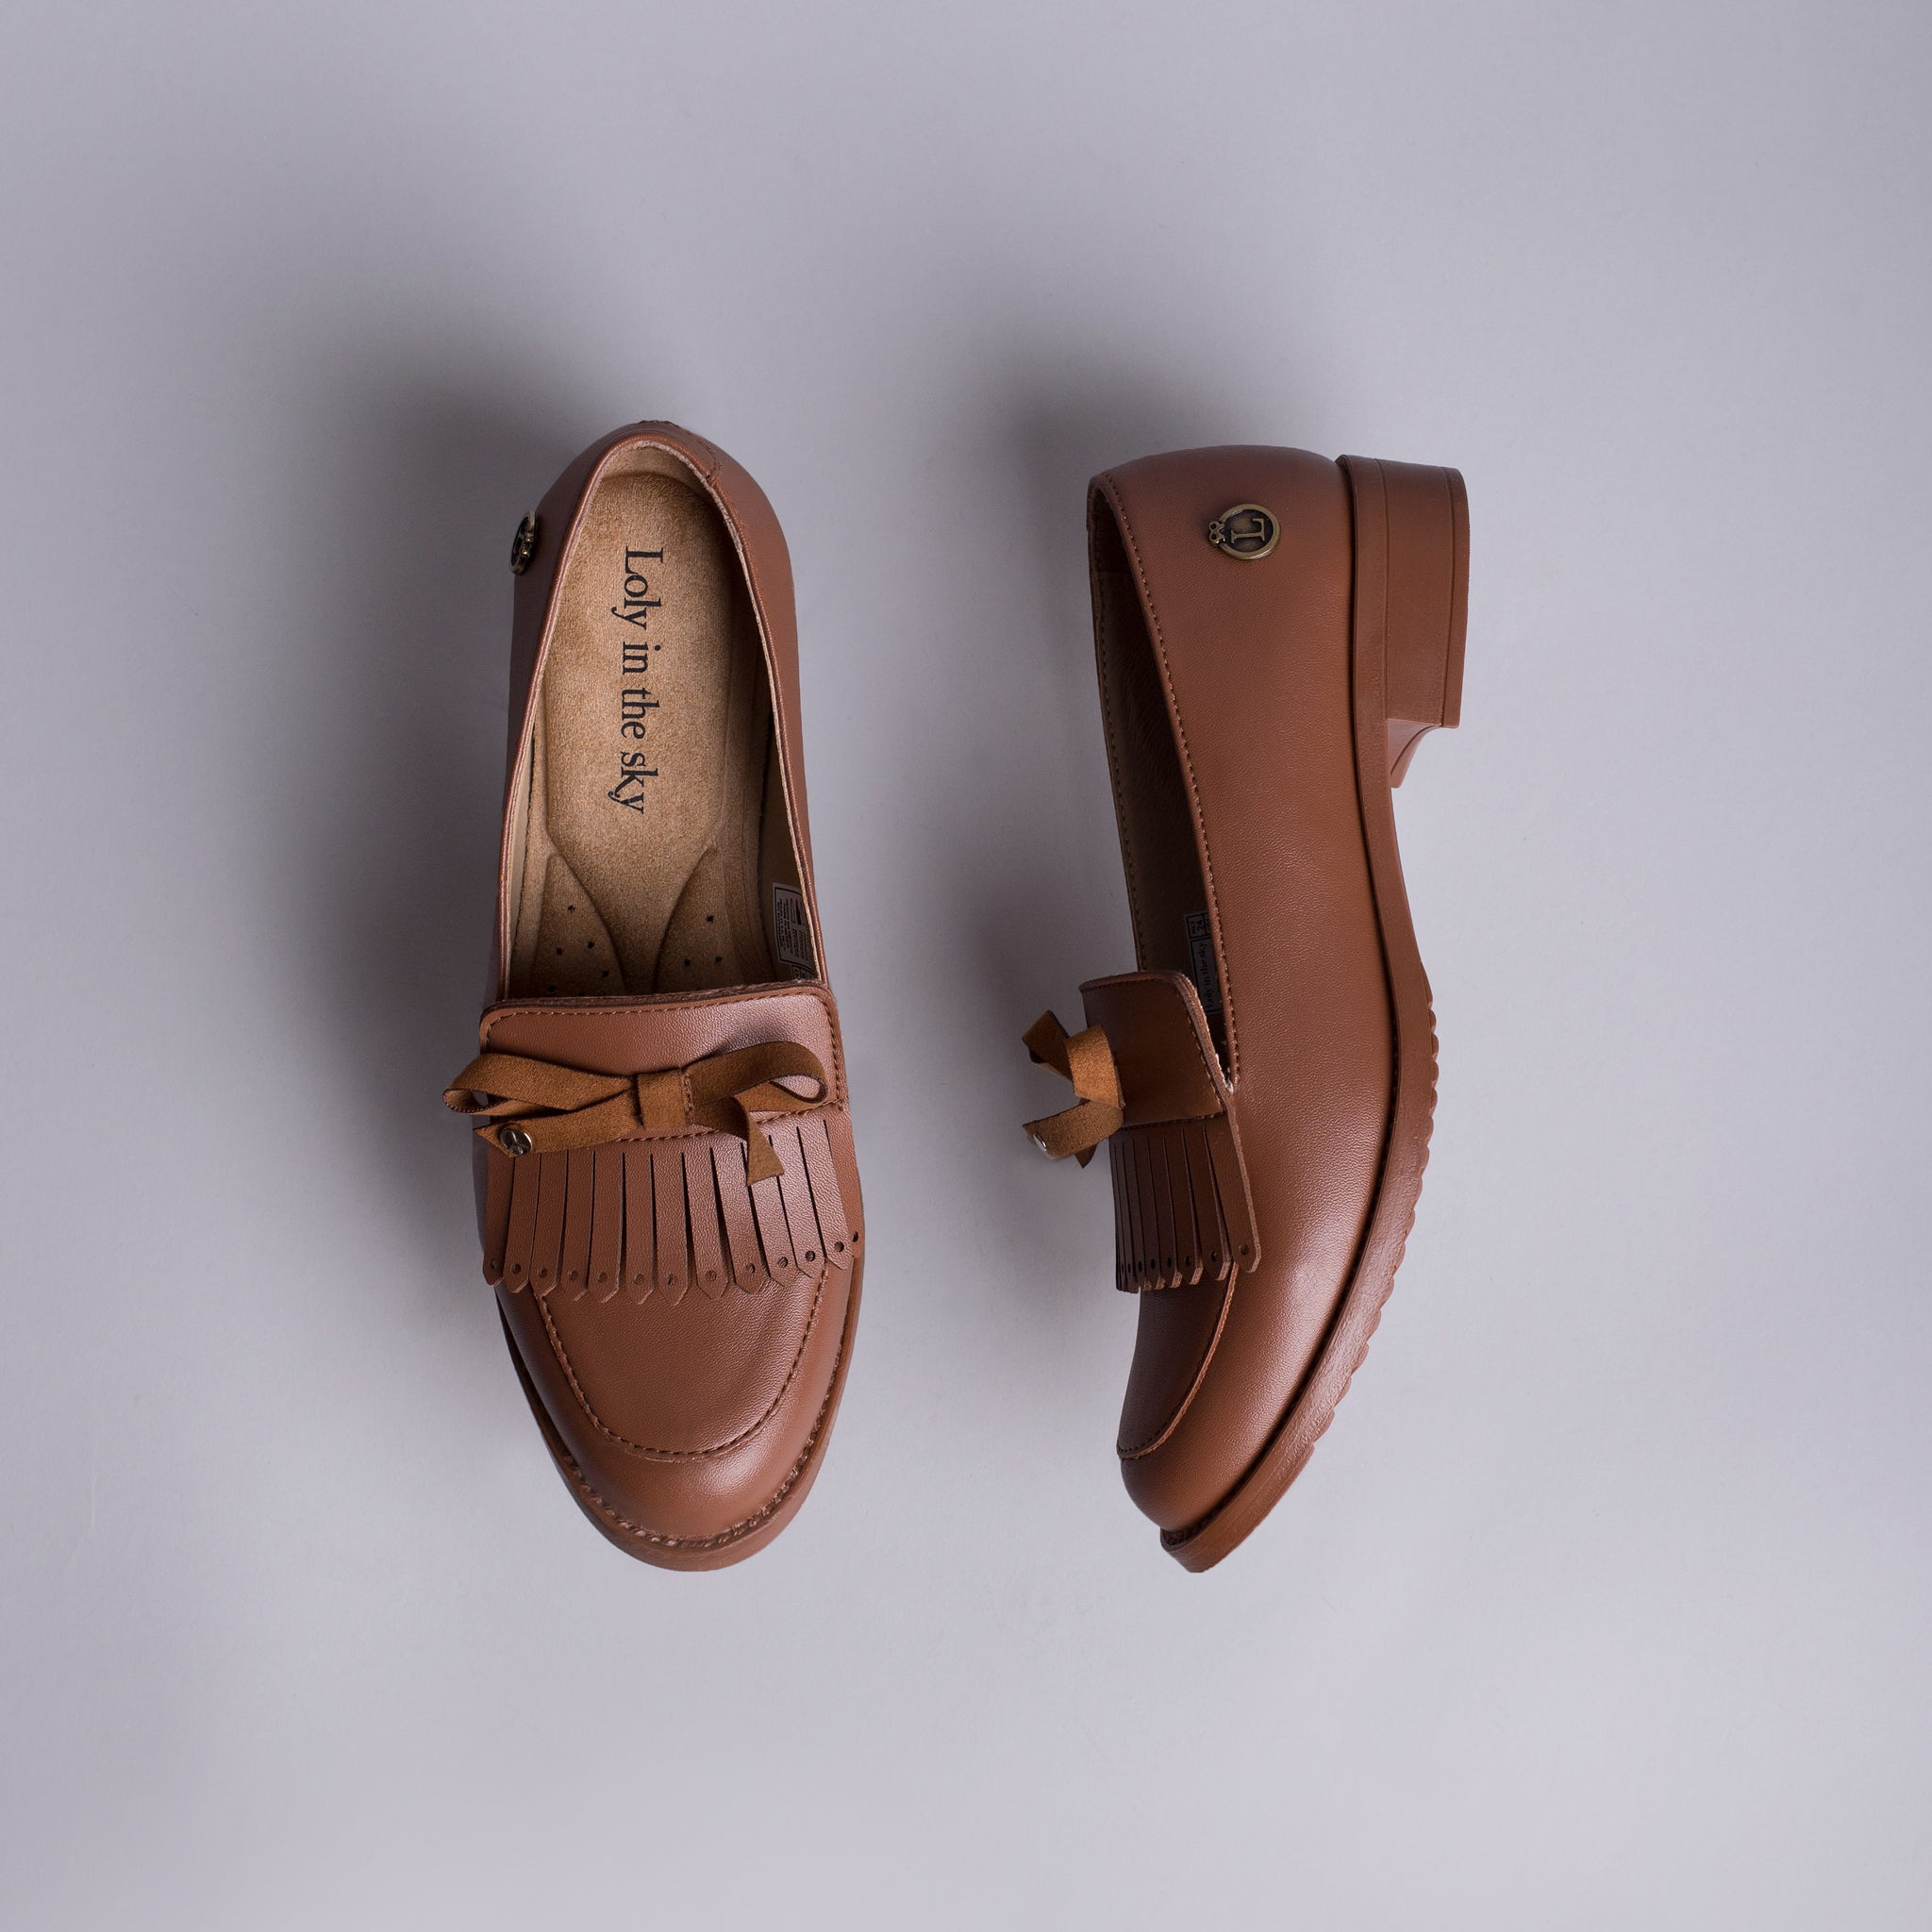 MALIA | LOAFERS CAFE PARA MUJER | LOLY IN THE SKY